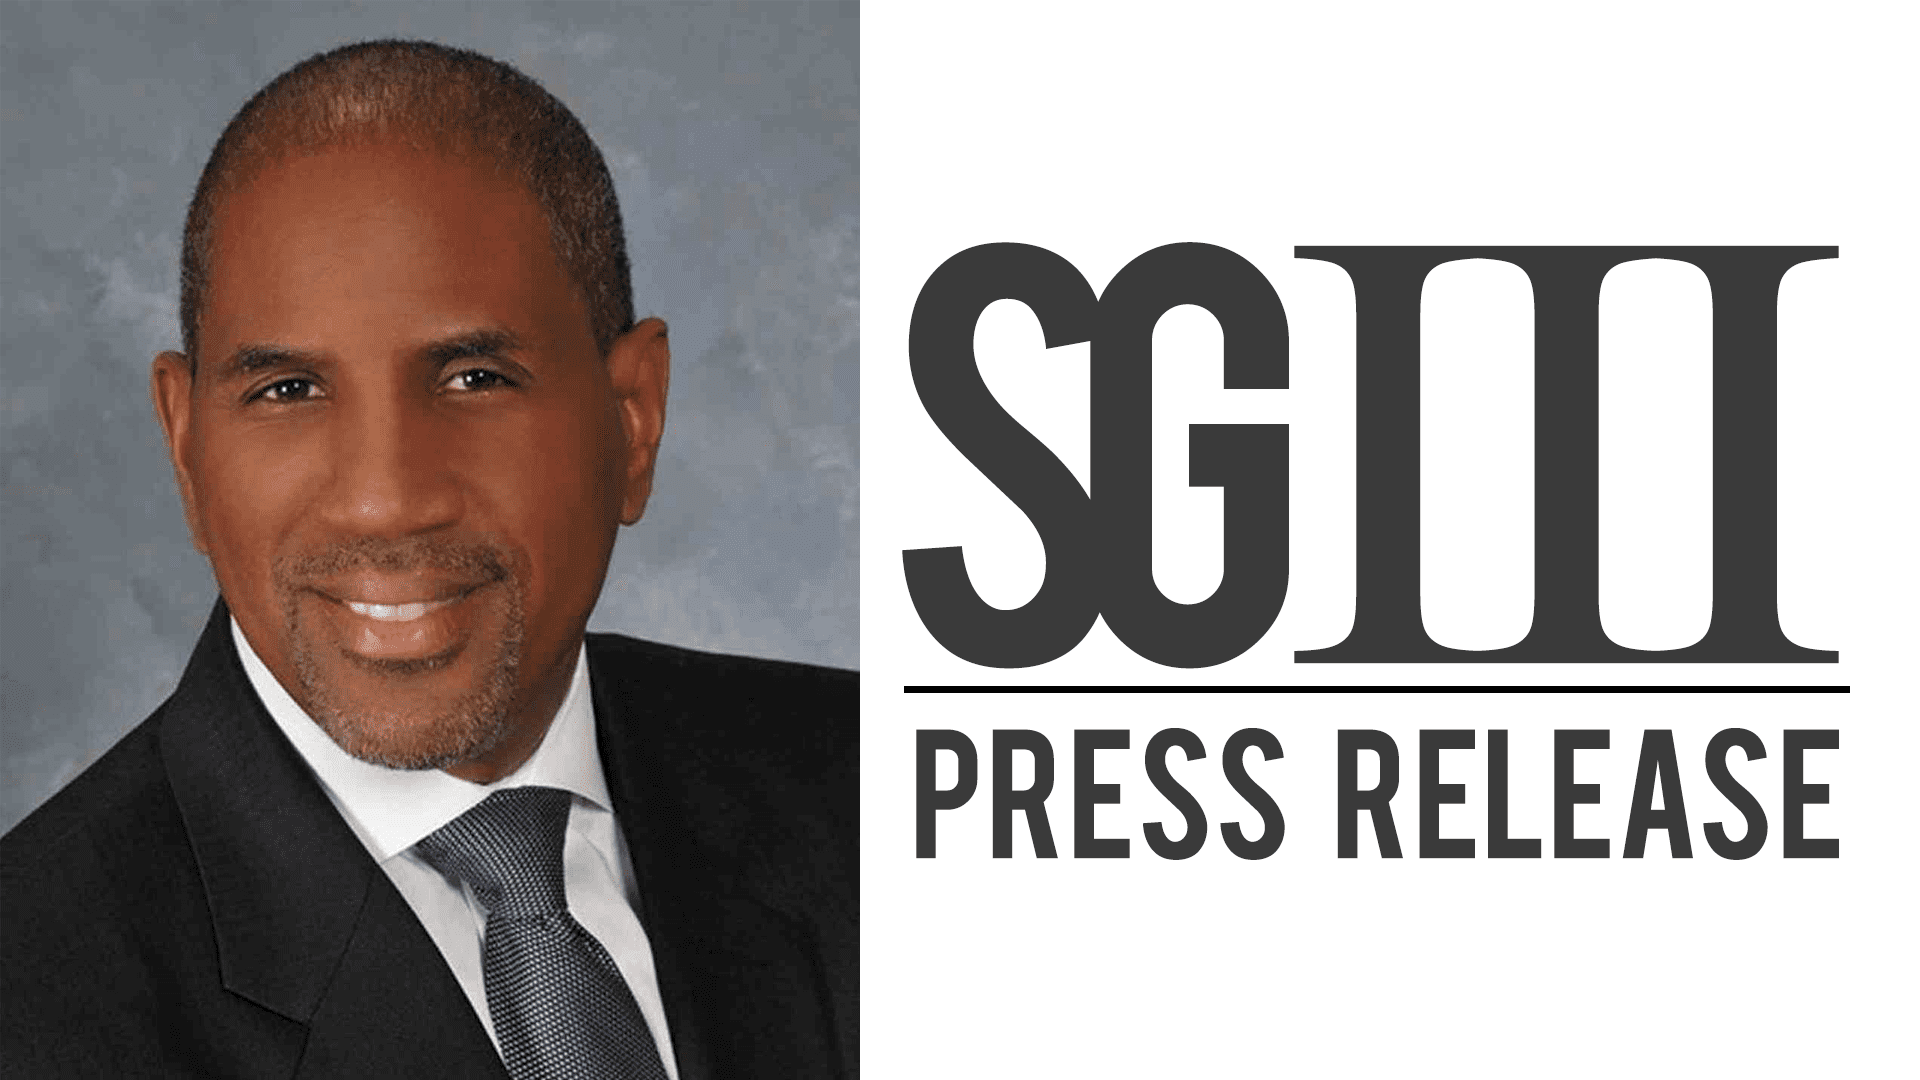 Dr. Steve Gallon III - Press Release